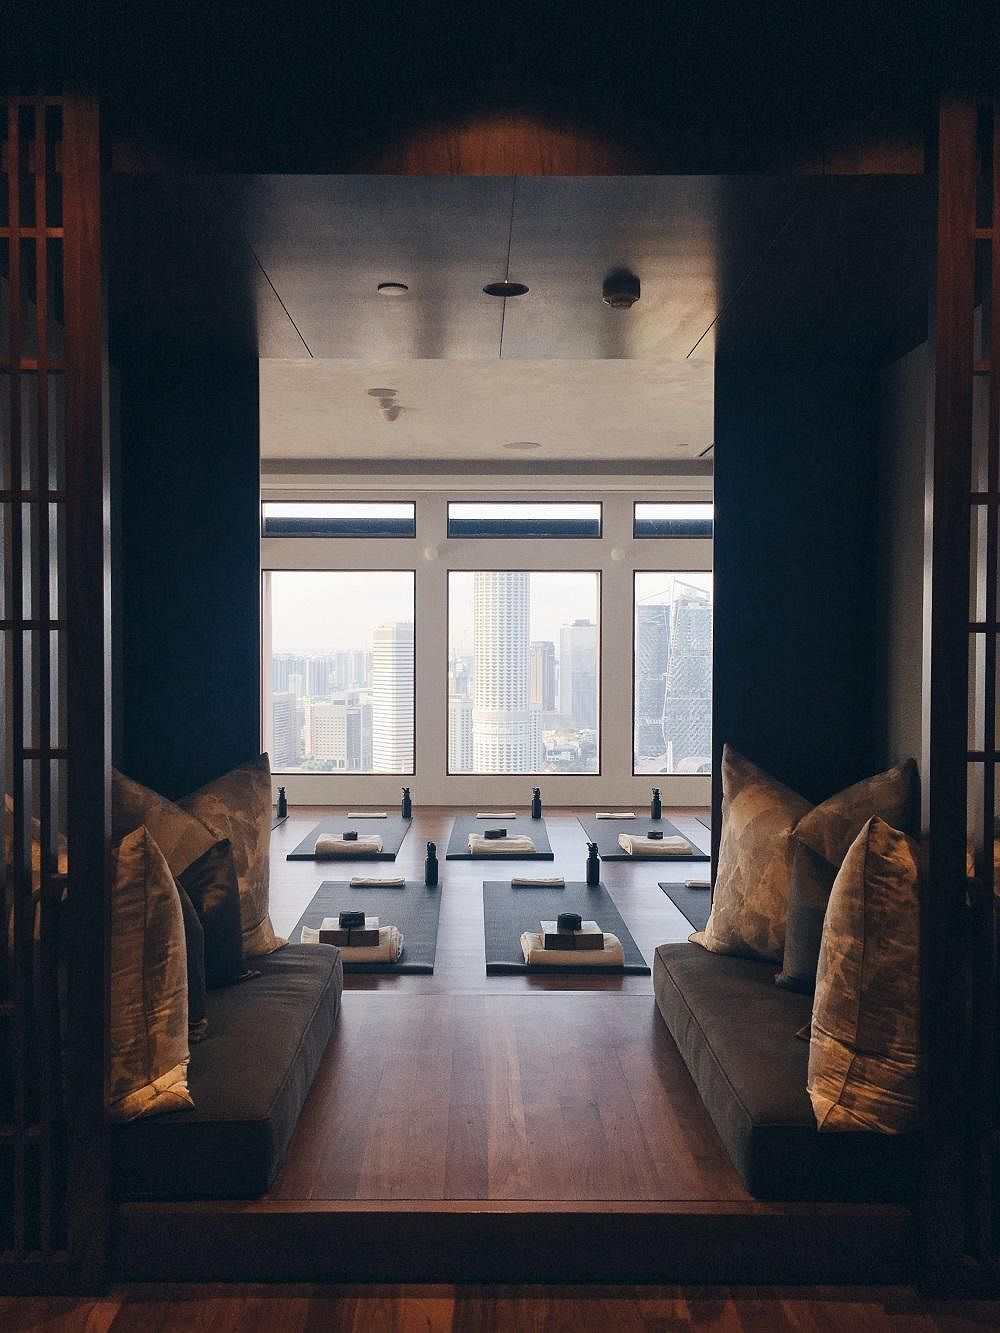 Check out: The Yoga School — CBD yoga studio with spa or hotel-like spaces and amazing views 4